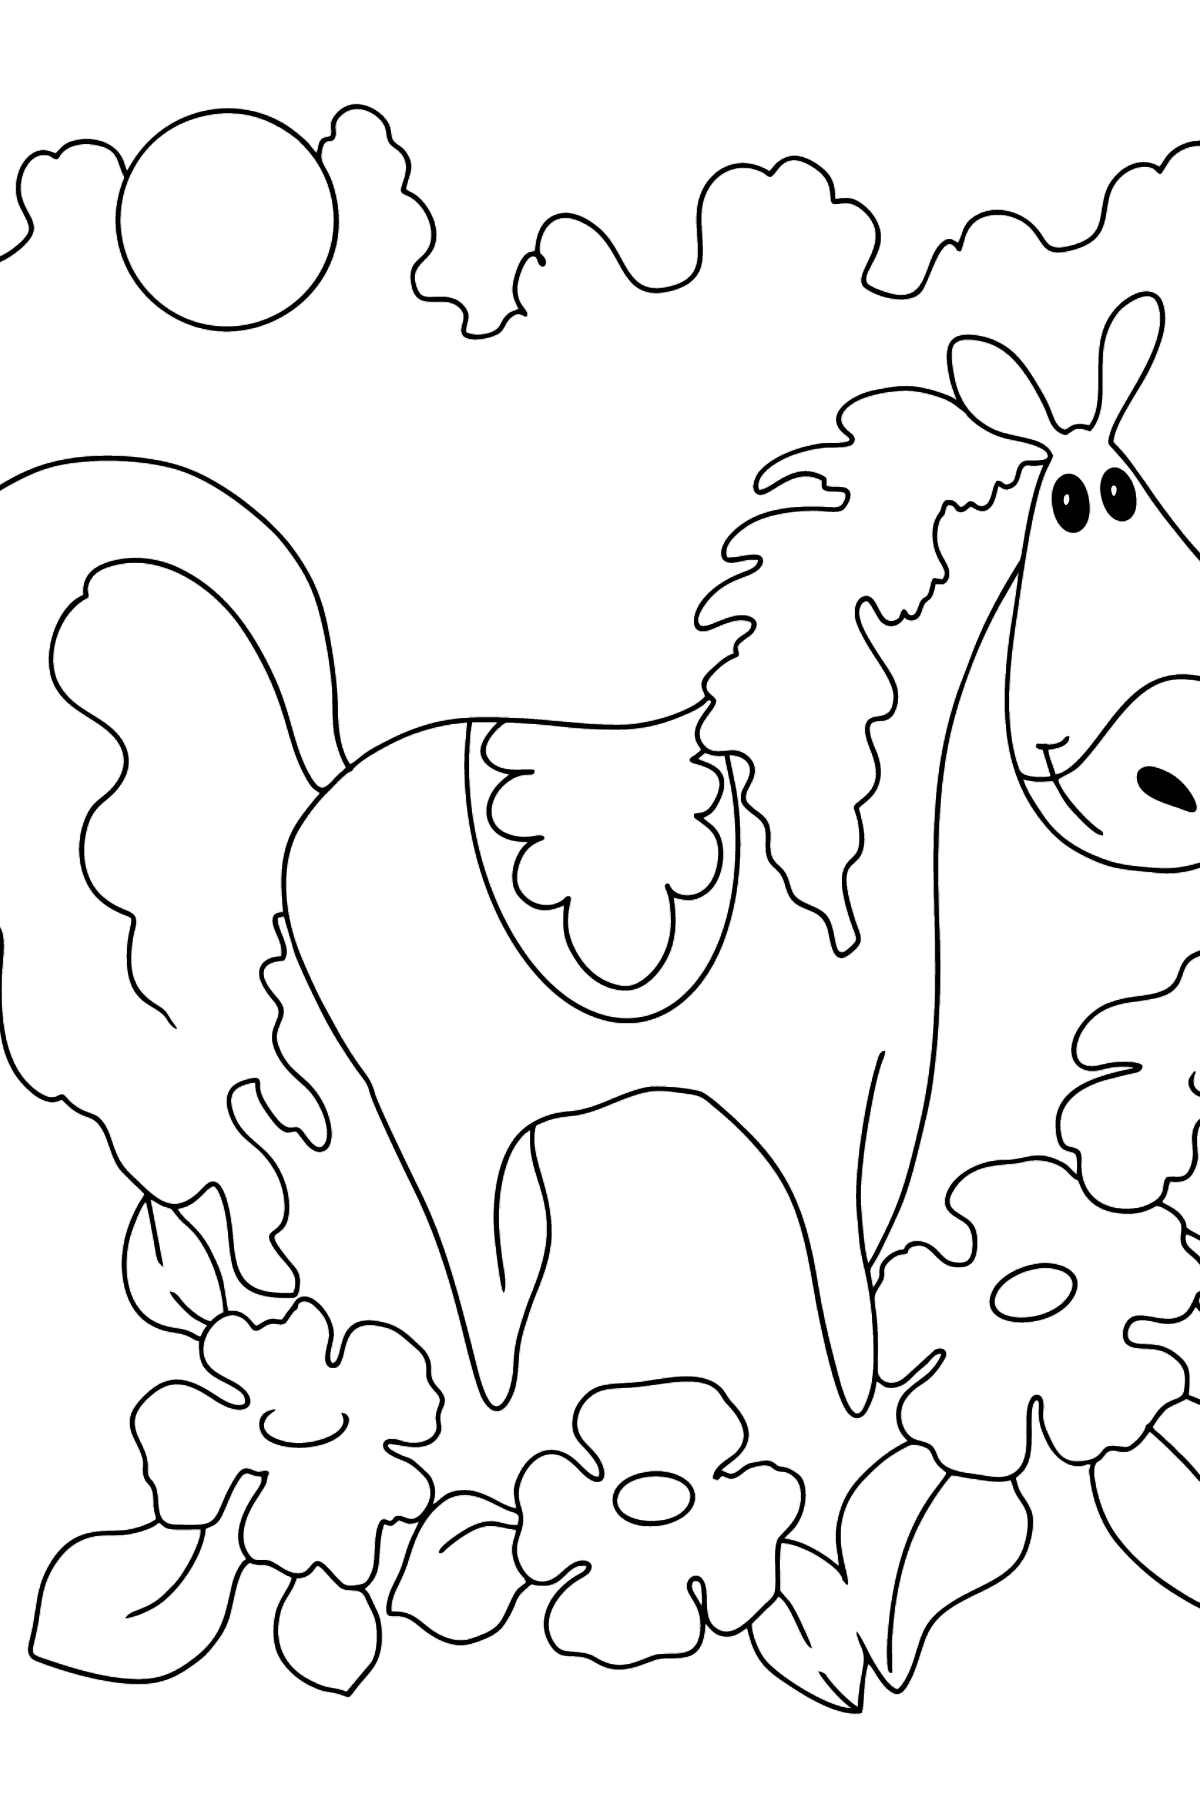 Coloring page a horse in flowers - Coloring Pages for Kids